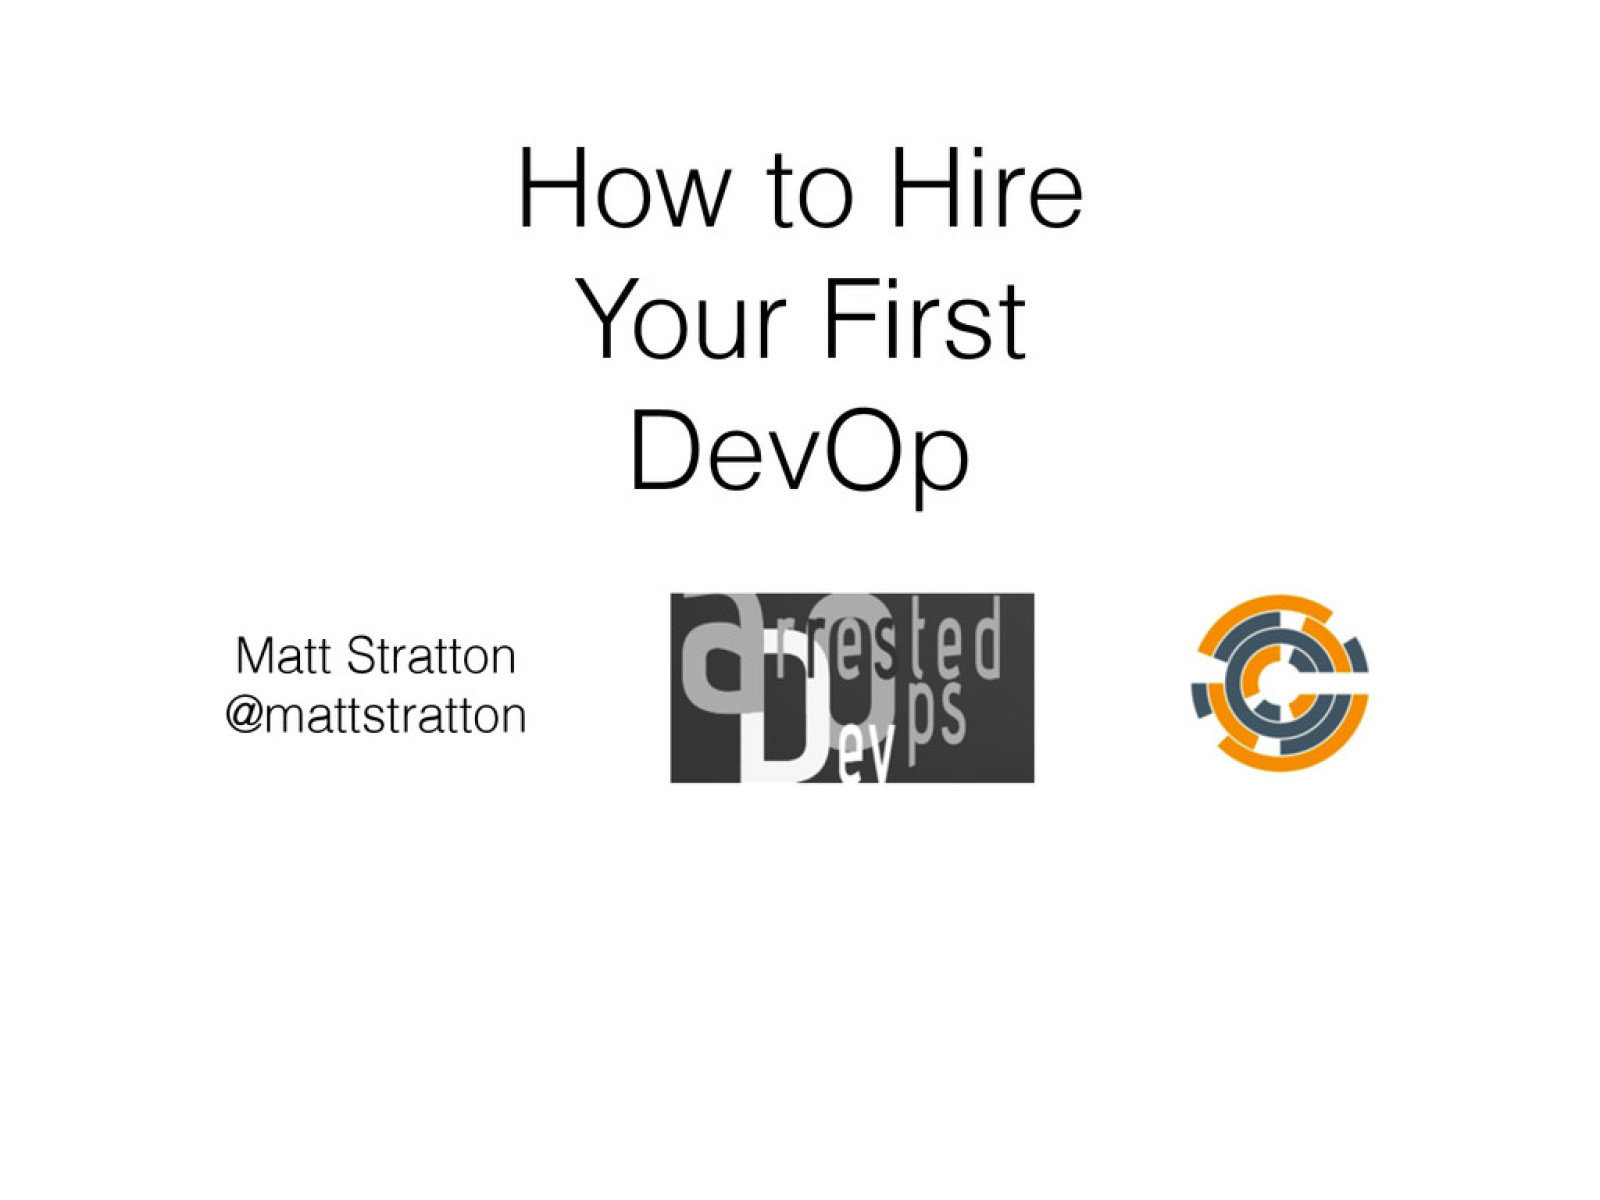 Hiring Your First DevOp